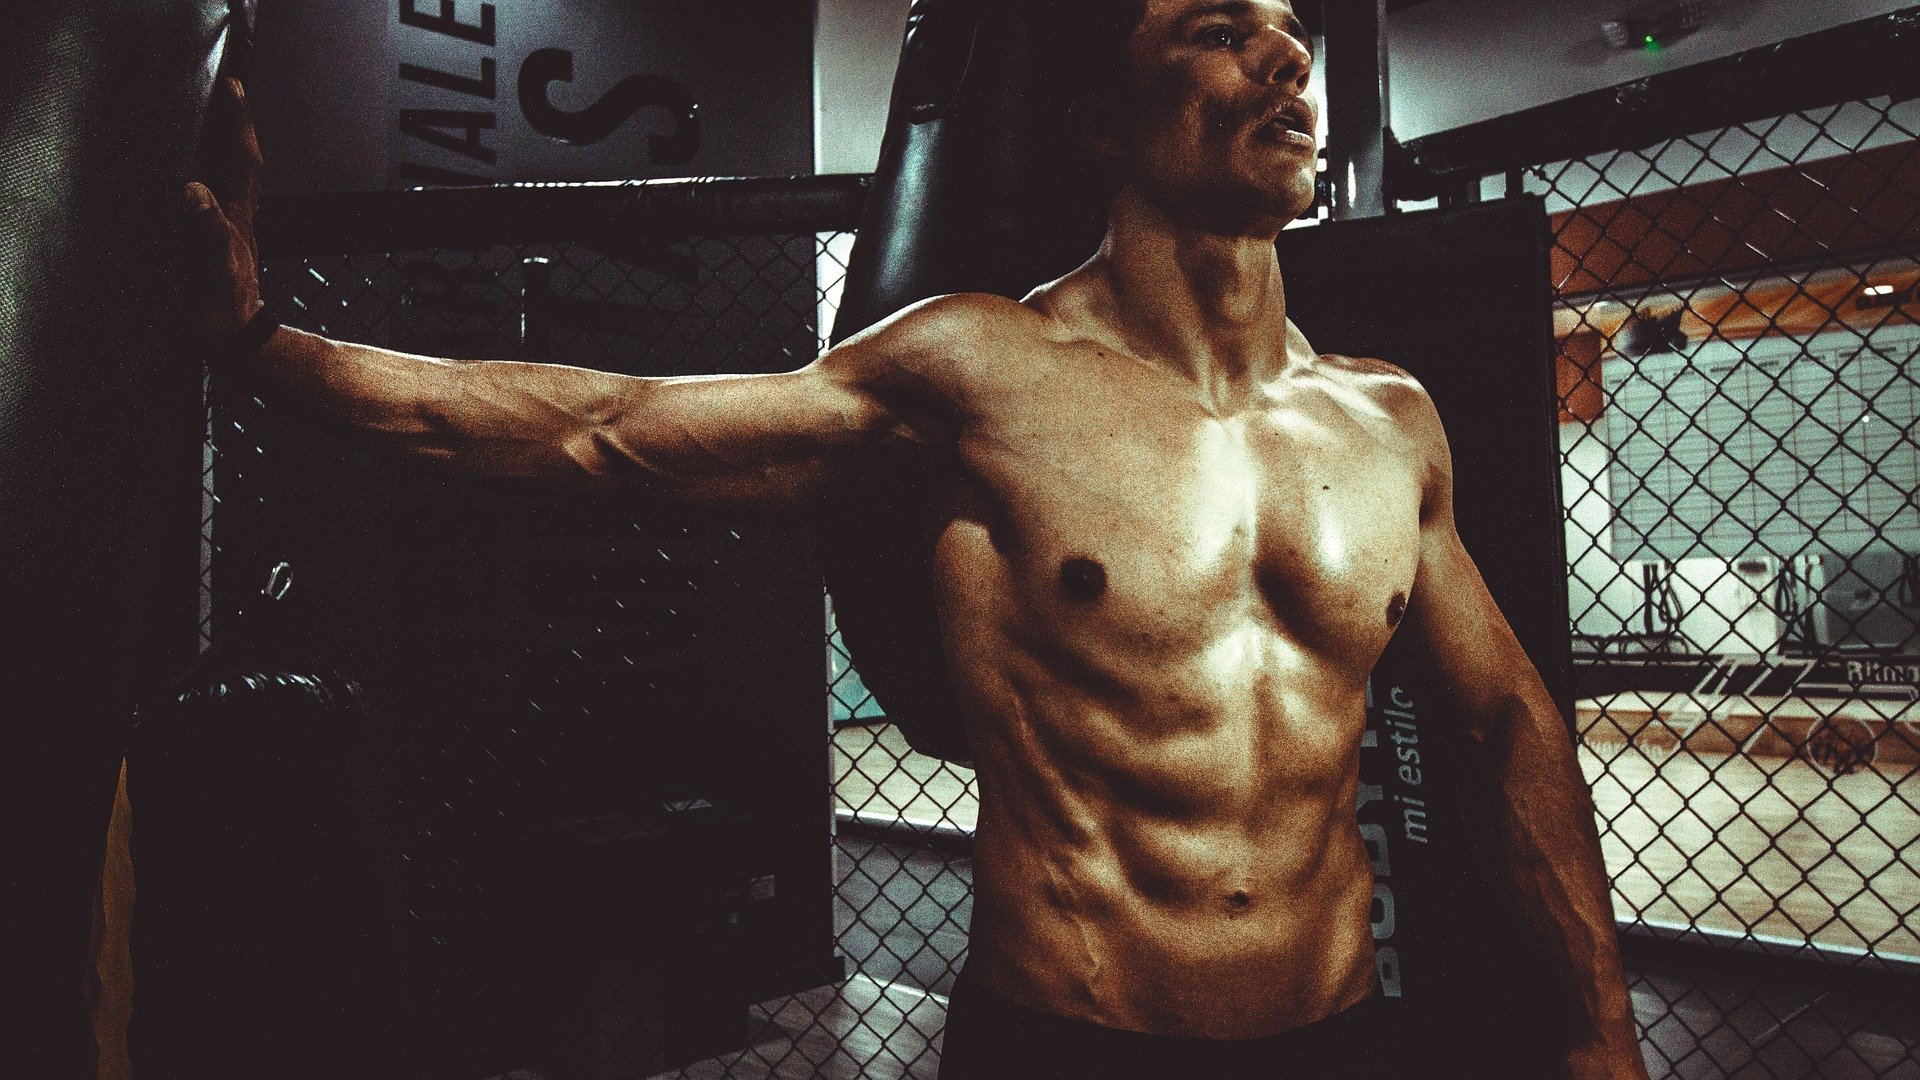 Men focused on muscle building struggle with binge drinking and other problems thumbnail